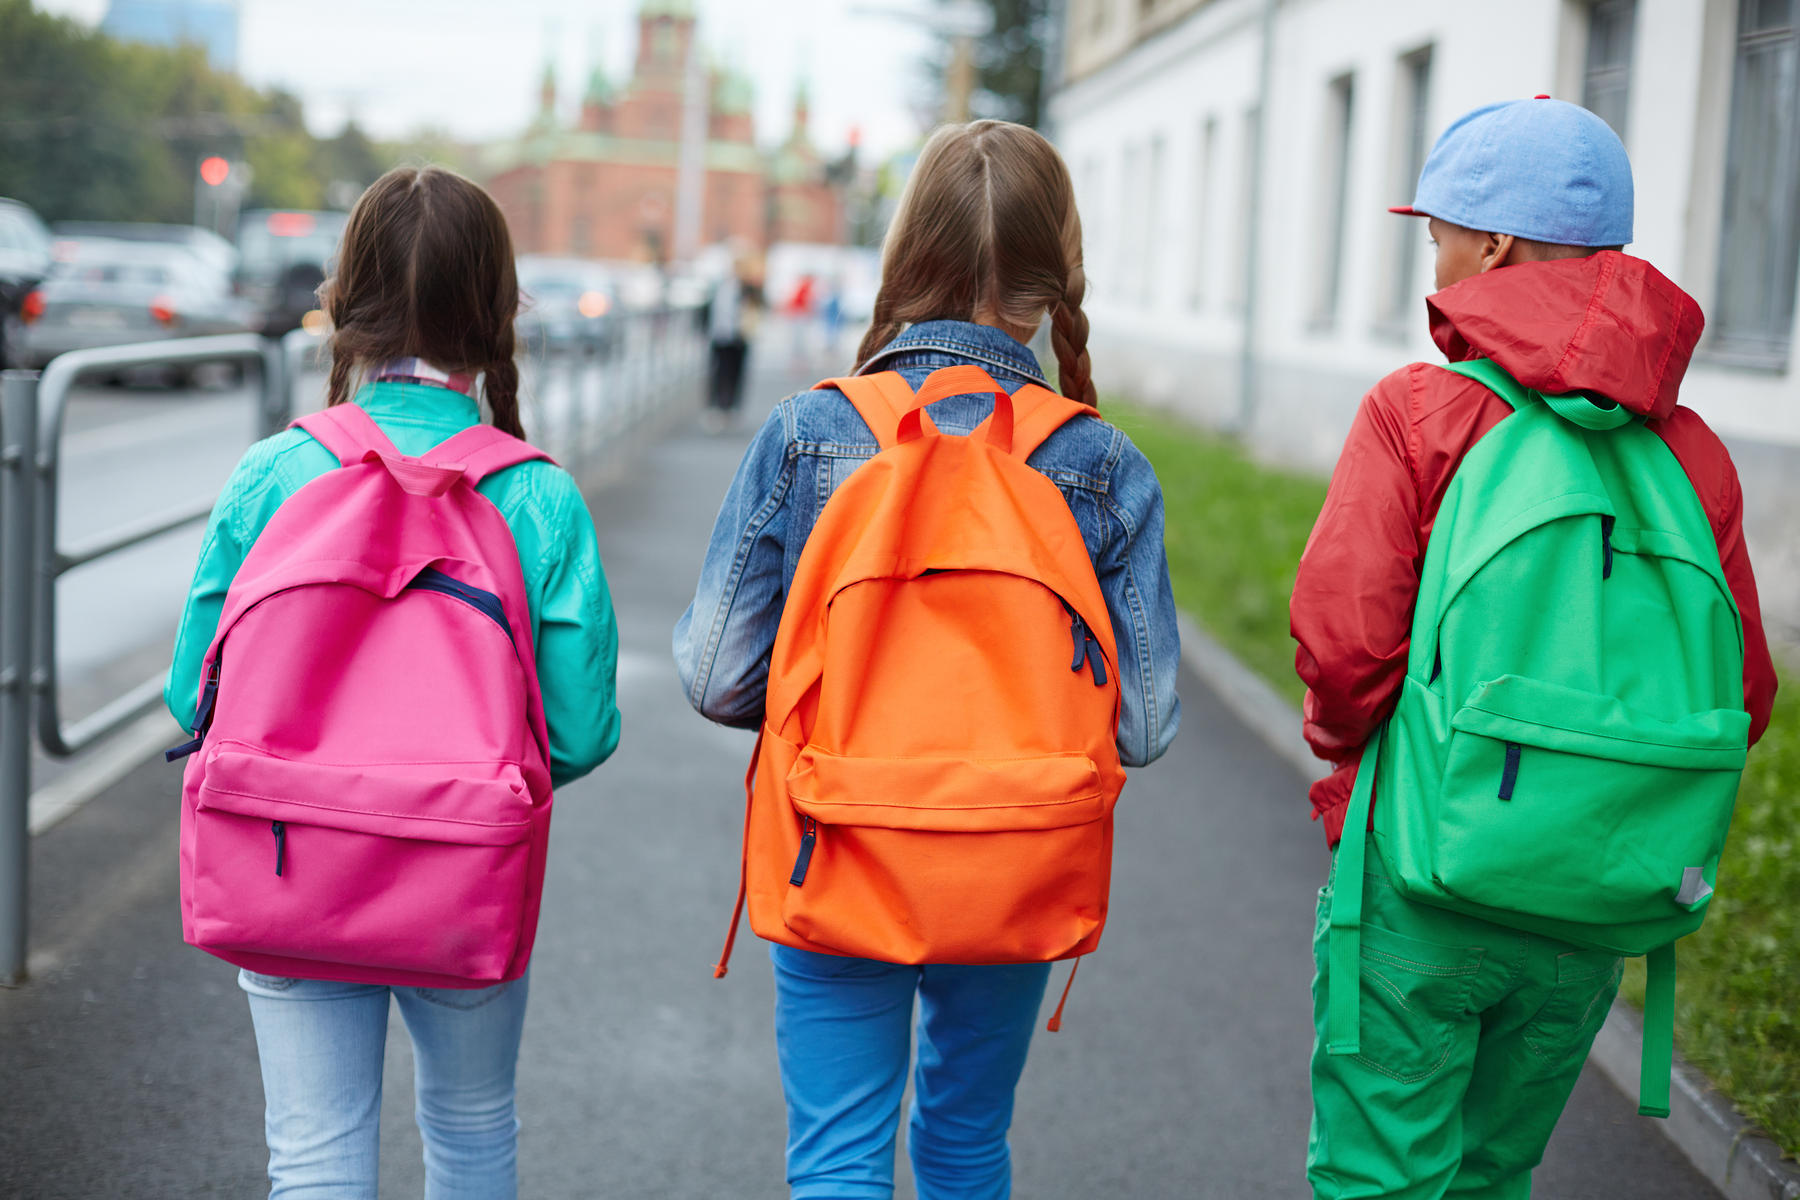 children walking home from school with colorful backpacks